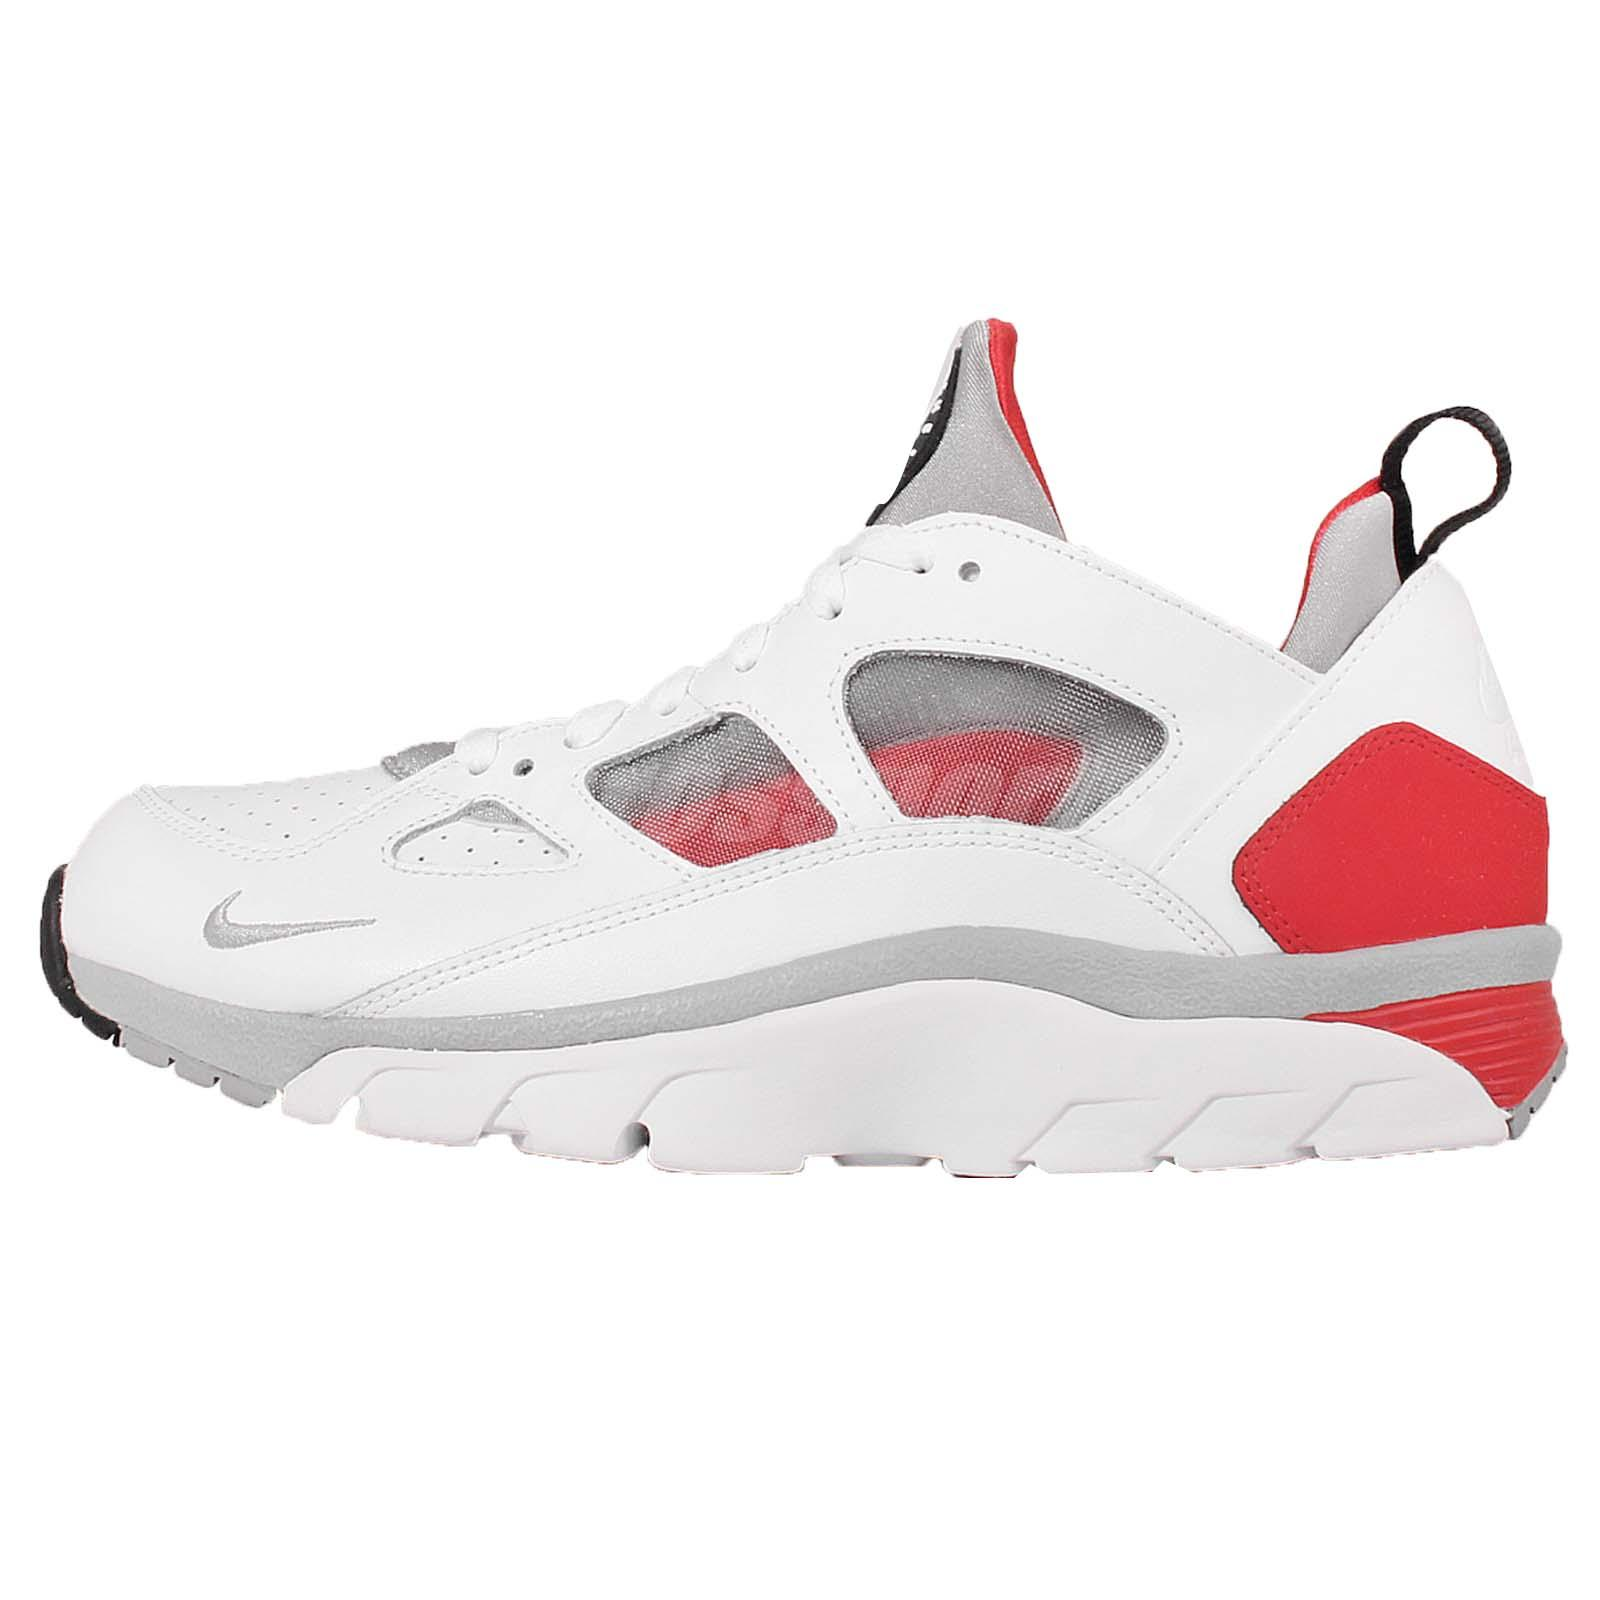 nike air trainer huarache low white red mens cross training shoes 749447 102. Black Bedroom Furniture Sets. Home Design Ideas